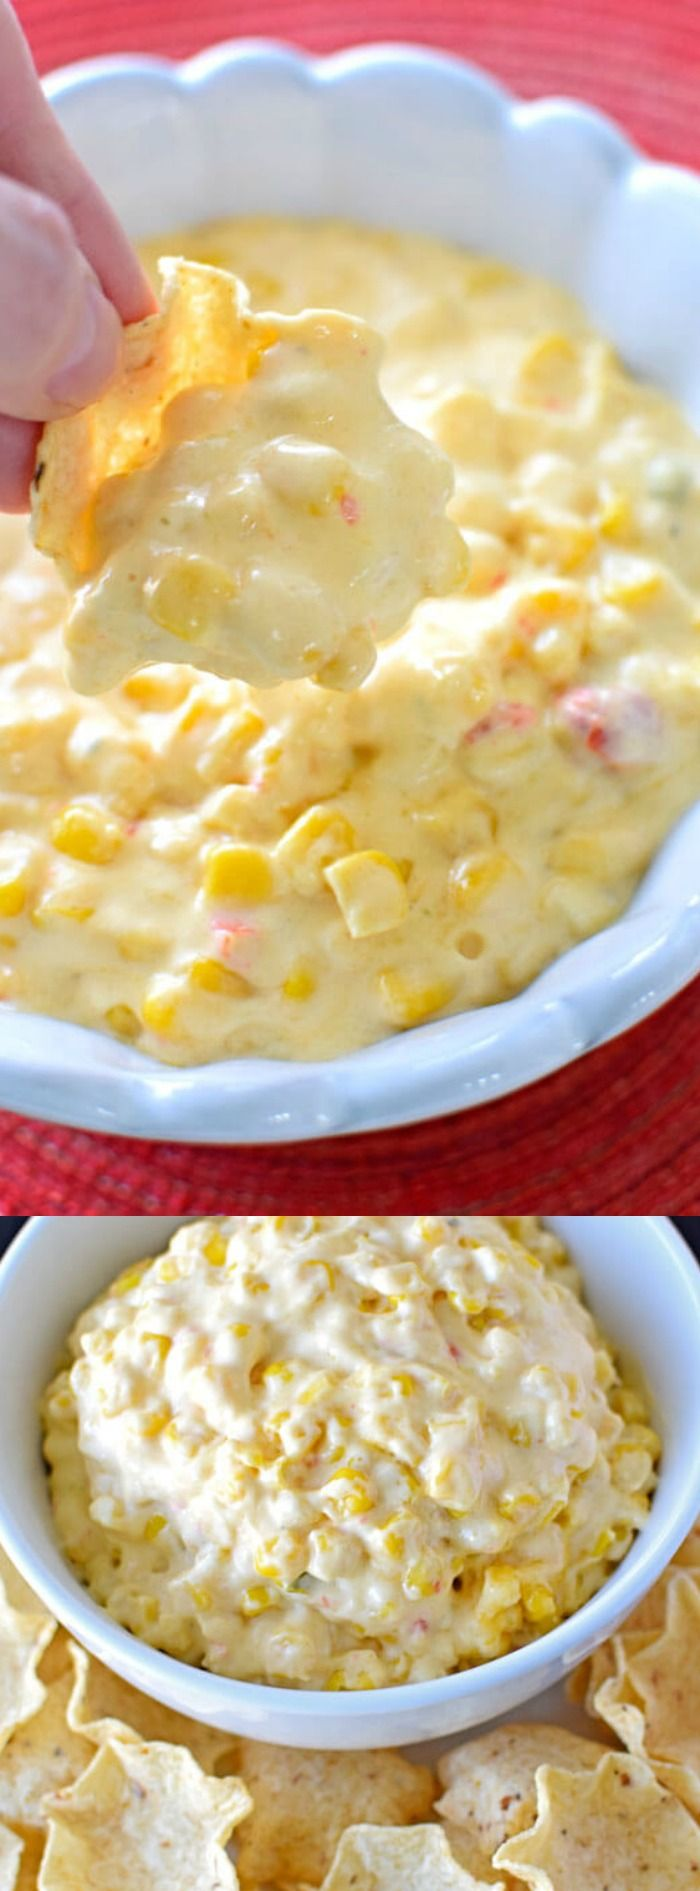 This Mexican style Corn Dip recipe from Homemade Hooplah is so incredibly good and comes together in just 15 minutes.